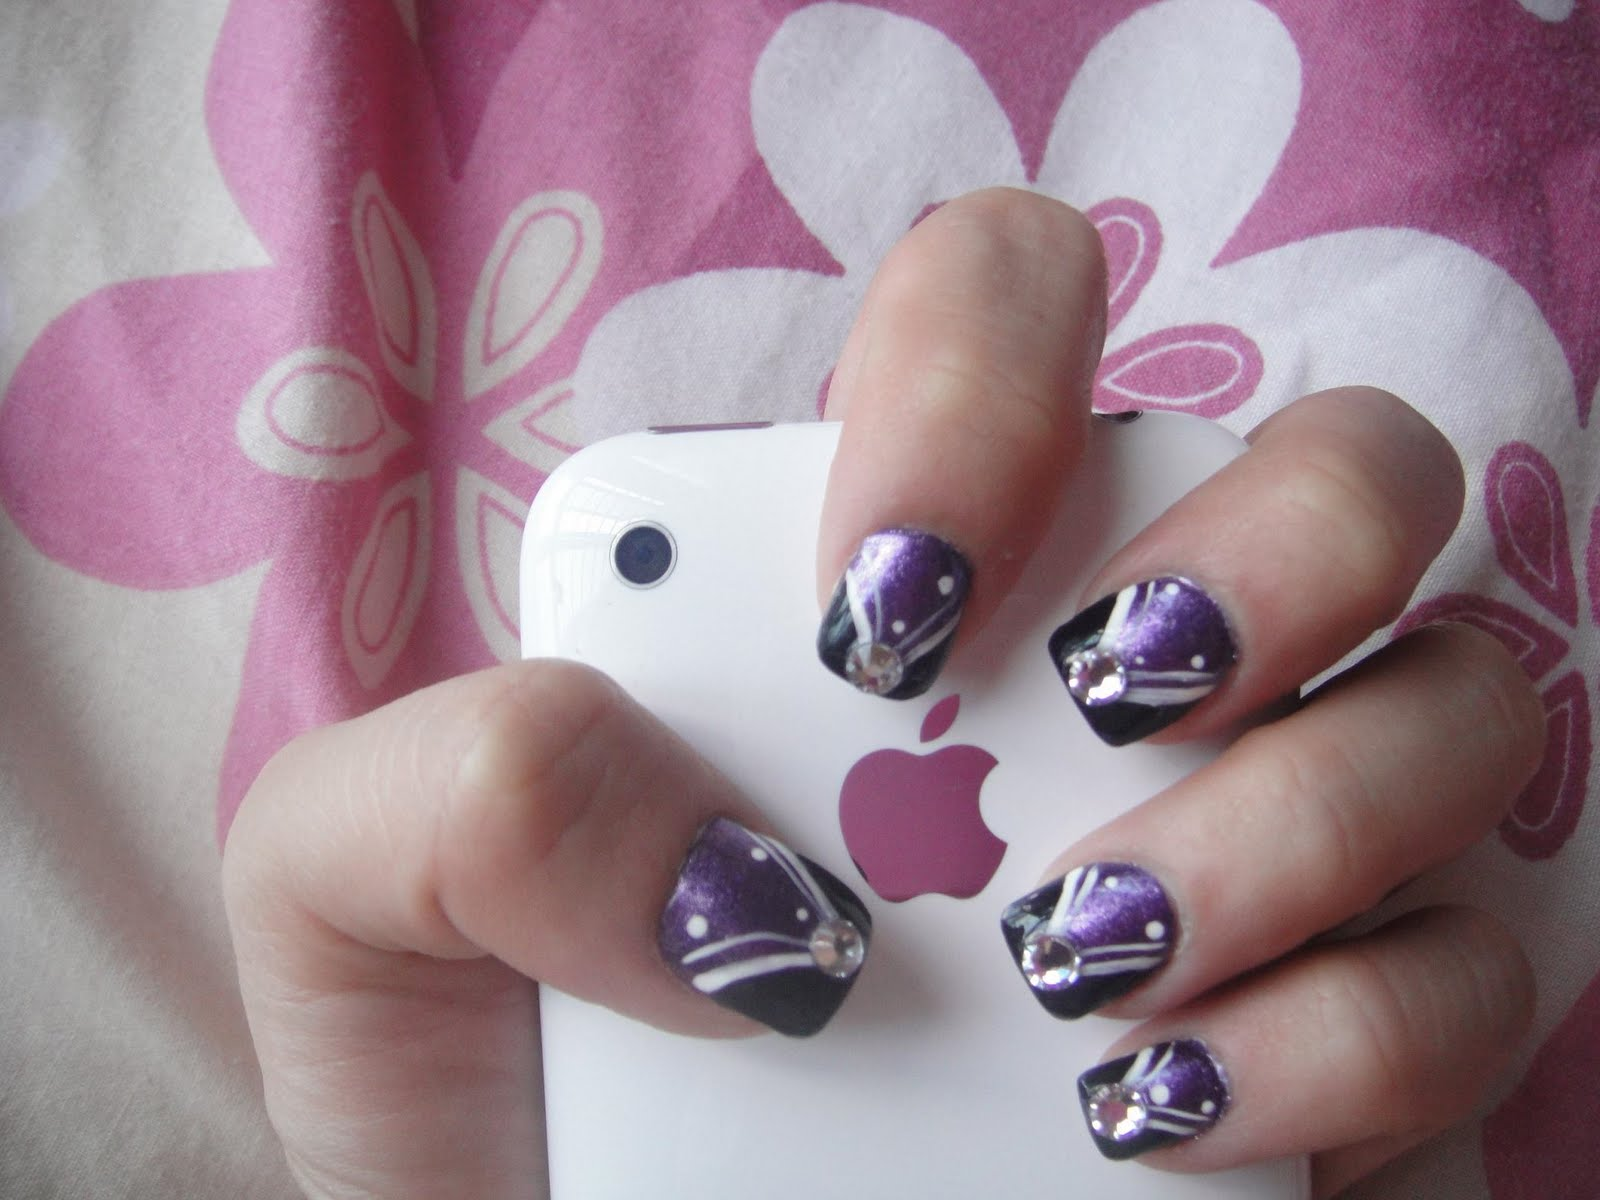 Nail Design Ideas 2012 valentines day nail art designs 2012_1 Best Nail Designs For Short Nails Cute Nail Art Designs 2012